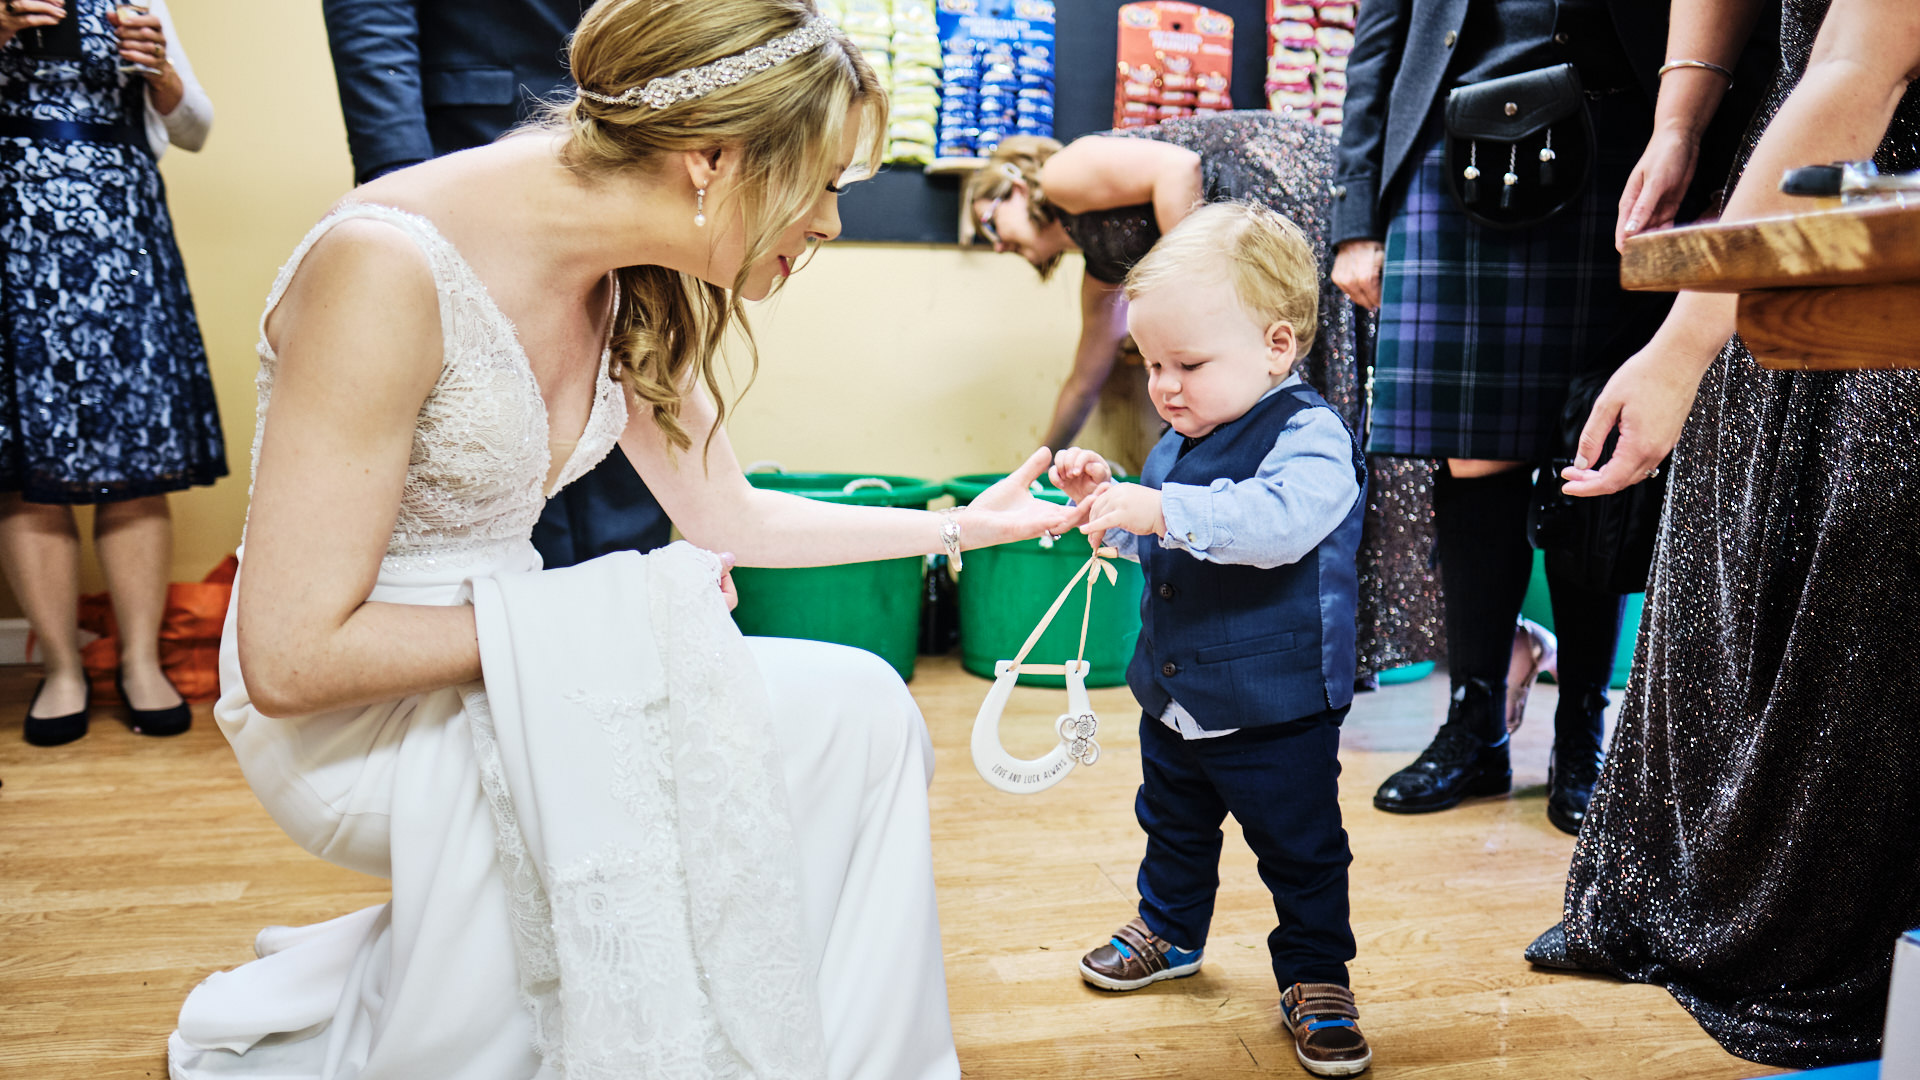 colour photograph of a toddler giving a horseshoe to a bride during her wedding